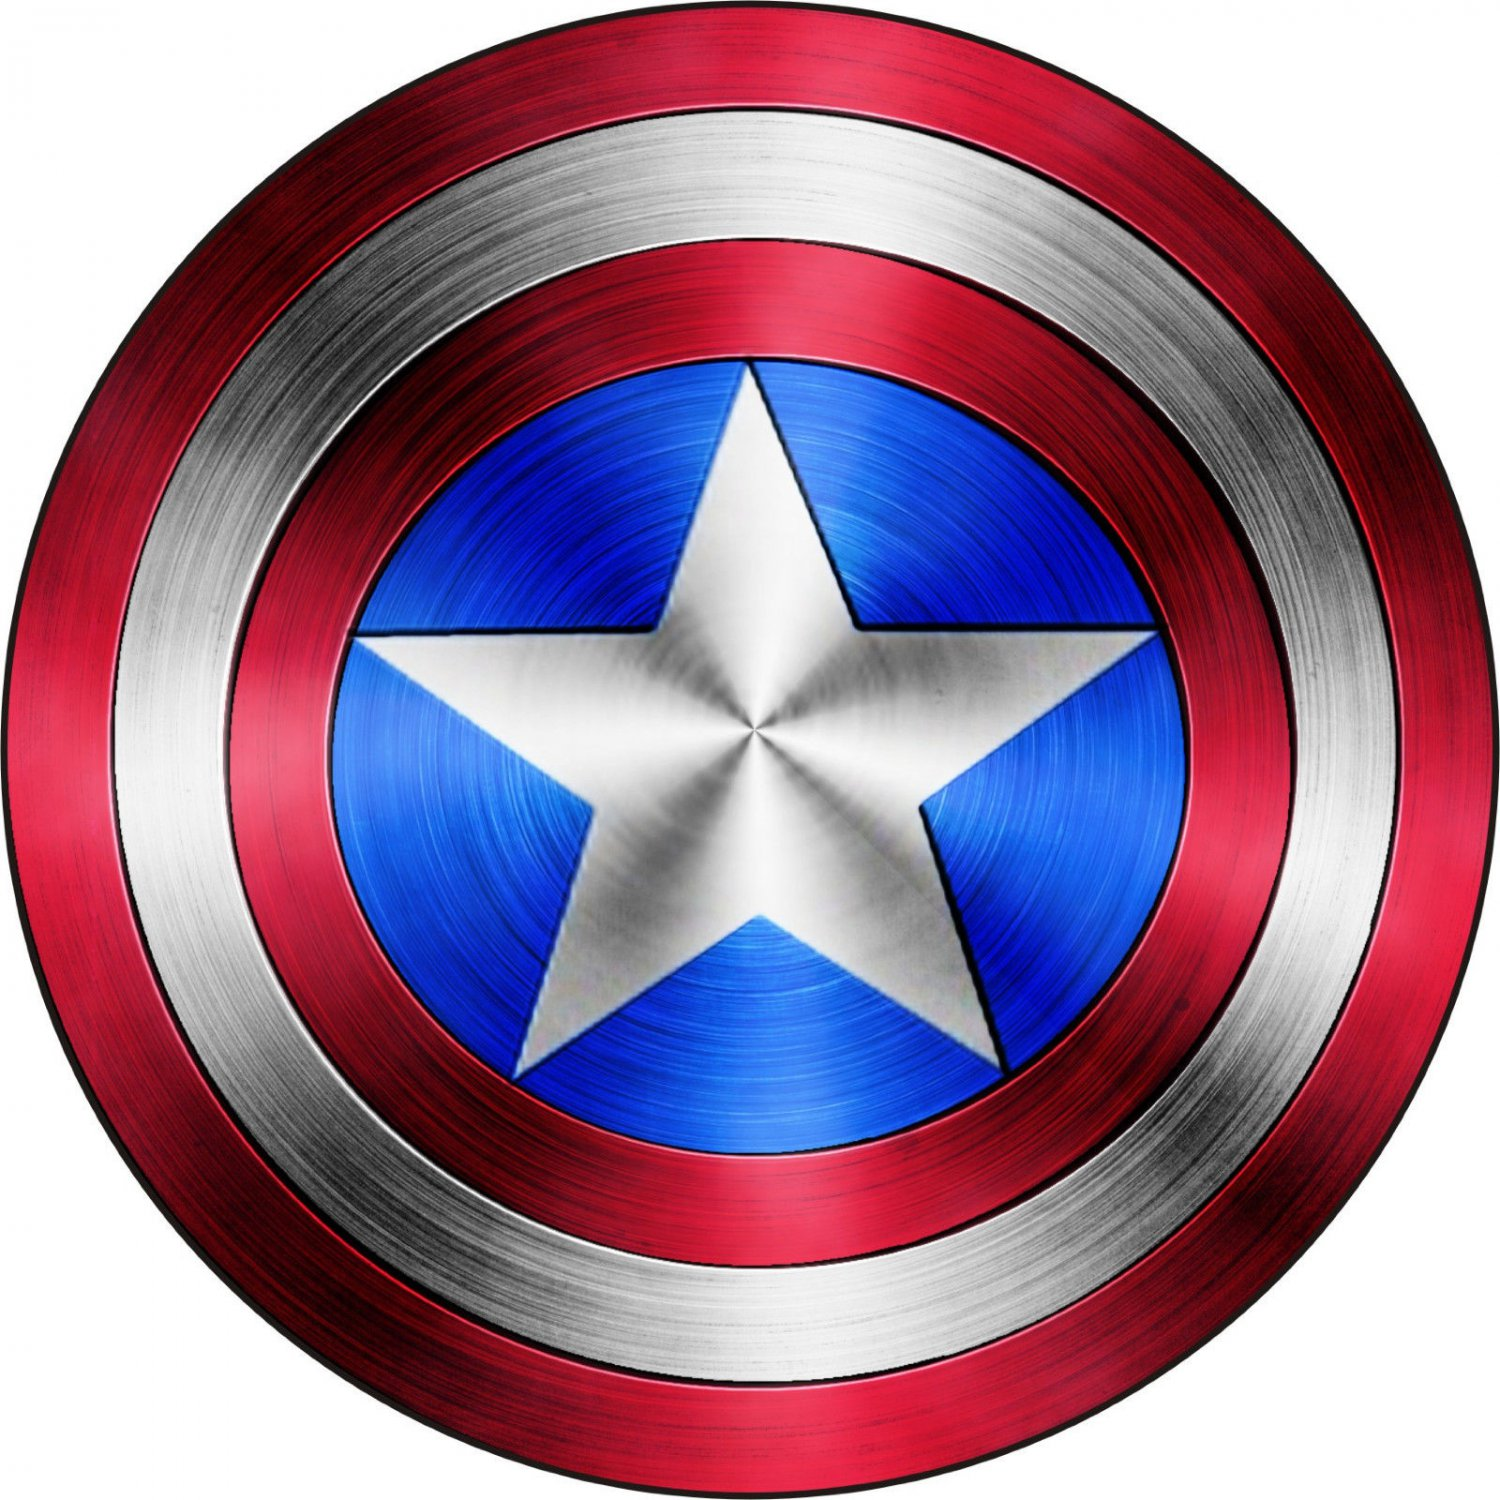 4 Inch Full Color Captain America Shield Vinyl Decal Car Truck Window Sticker Yeti Laptop 00009